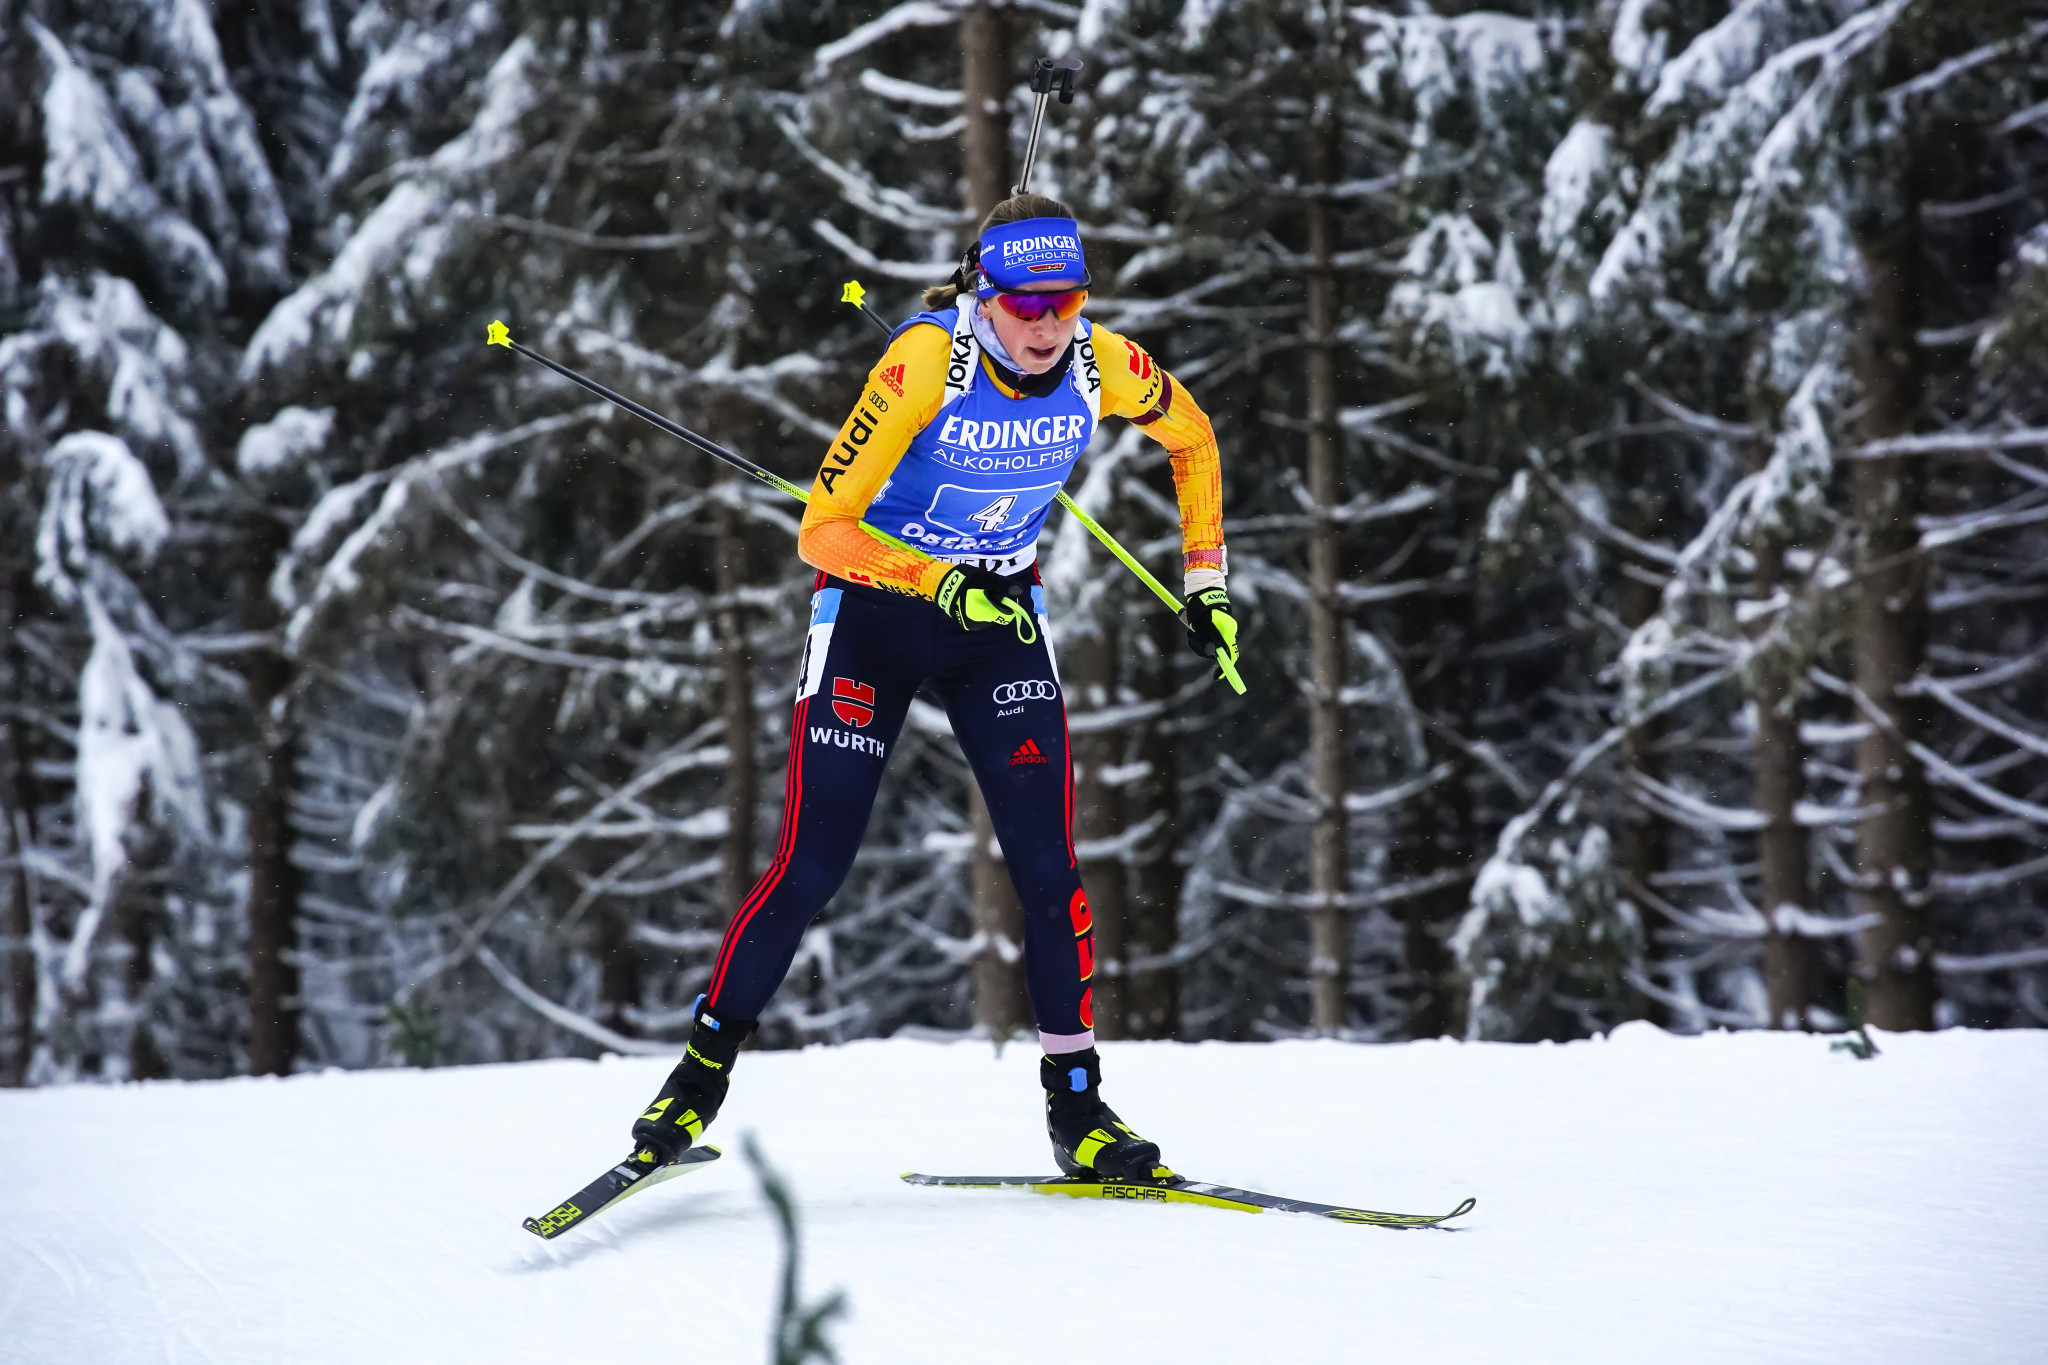 Franziska Preuss produced a strong final leg to secure victory for the German team ©Getty Images